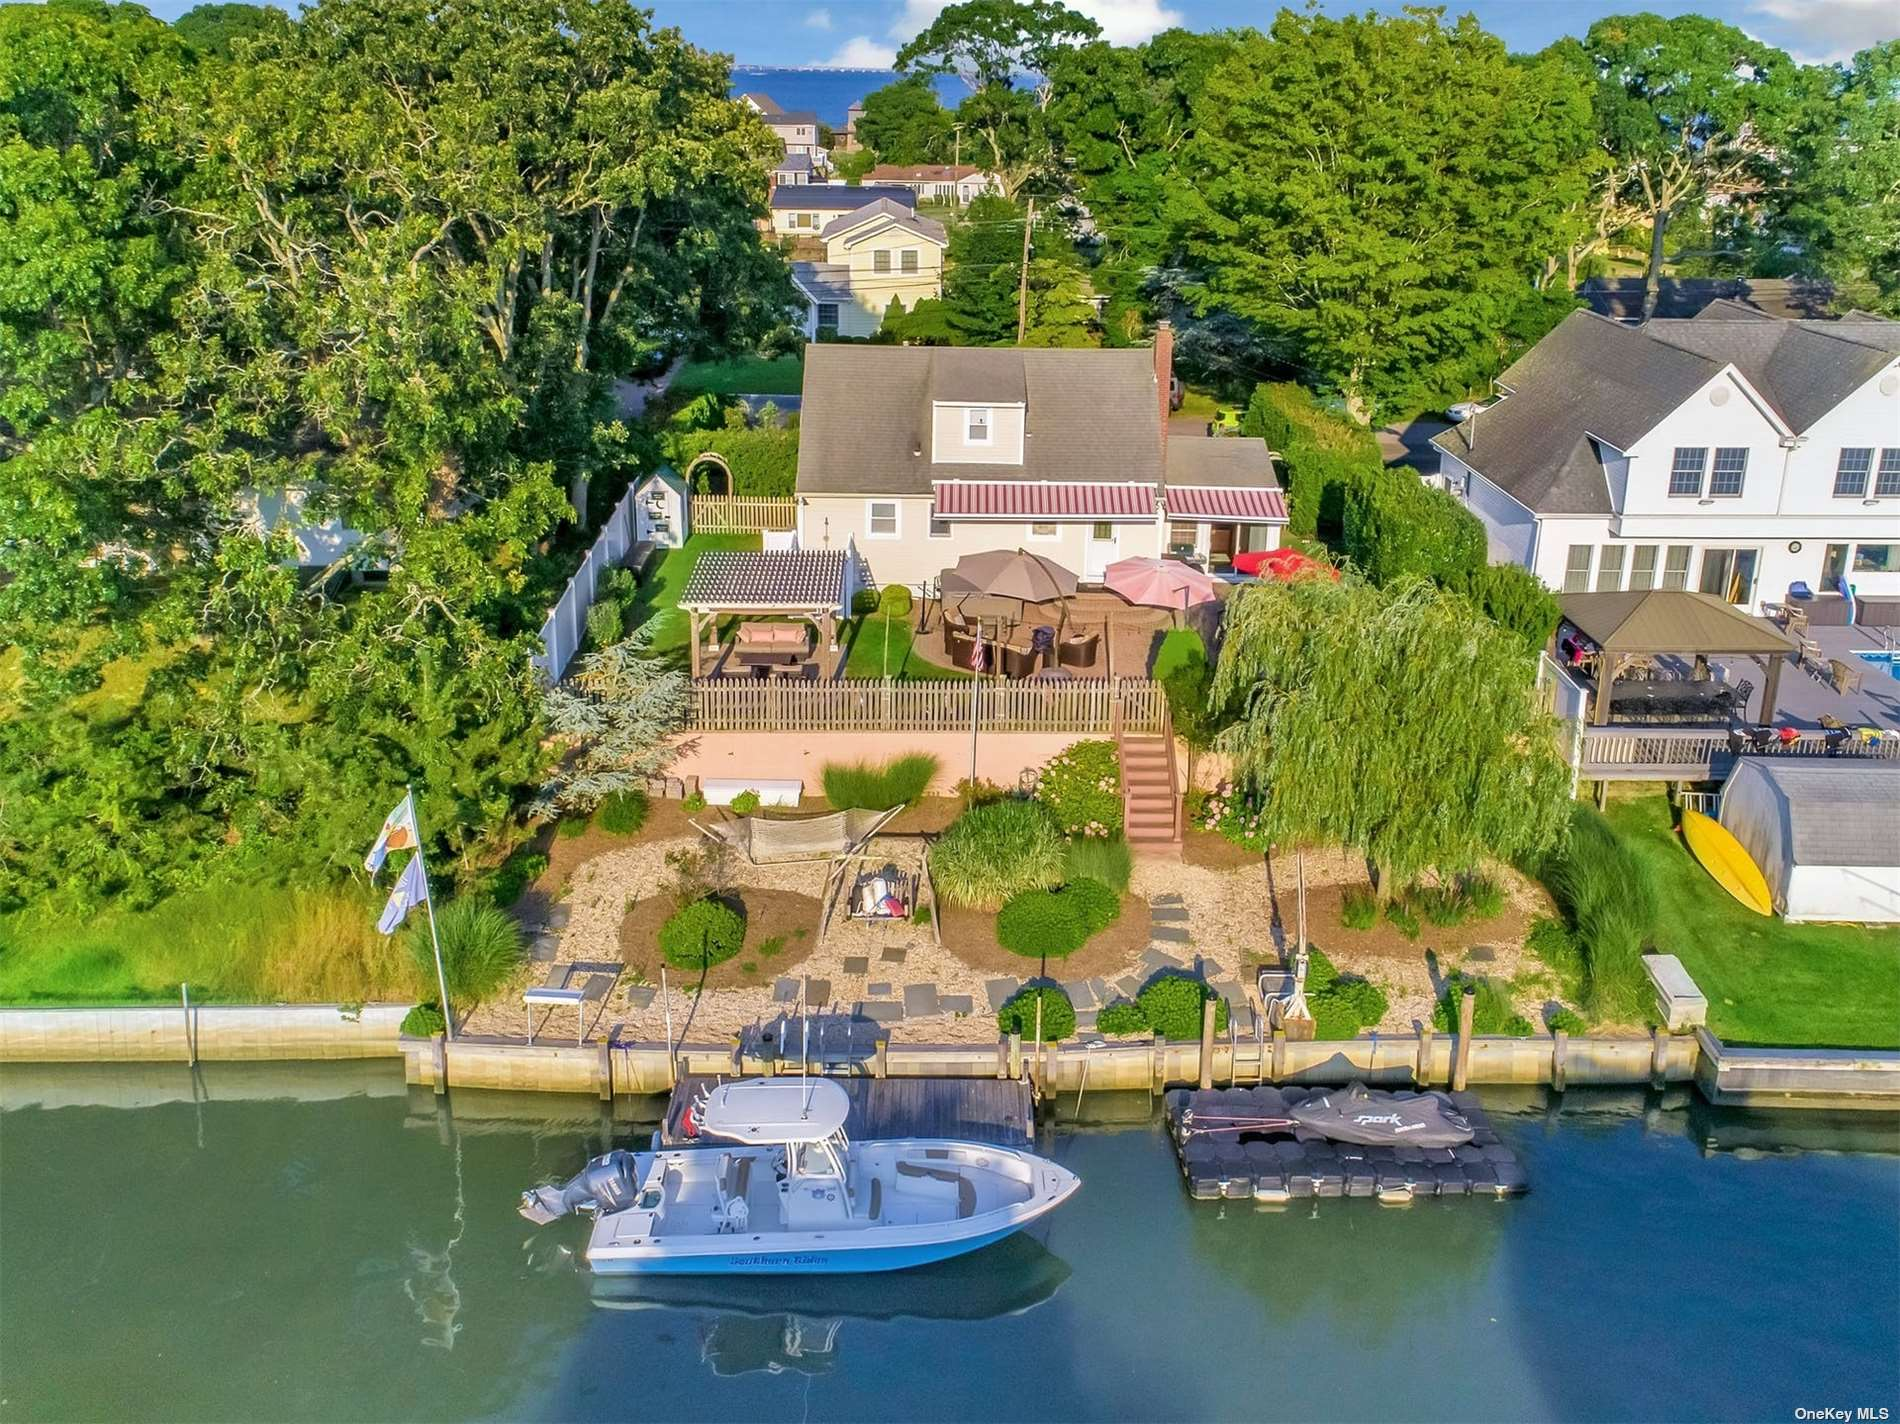 Located on Shinnecock Bay tucked away in the southern part of East Quogue is this private community. With it's five canals, private sandy bay beach and play ground, this certainly has the amenities that can suit any buyer's needs. This home offers a great outdoor entertaining space with a large paver patio to lounge upon with backyard space for lawn games. Jump on your boat or jetski located on the spacious floating dock behind the home and after a long day on the water, freshen up in the enclosed outdoor shower. With an easy commute from NYC and nearby to extraordinary waterfront restaurants and ocean beaches, only minutes away by boat or car, this is an exciting opportunity to own a waterfront home that affords you the lifestyle you can share with family and friends. This is the Hampton's lifestyle that dreams are made of, come see for yourself!